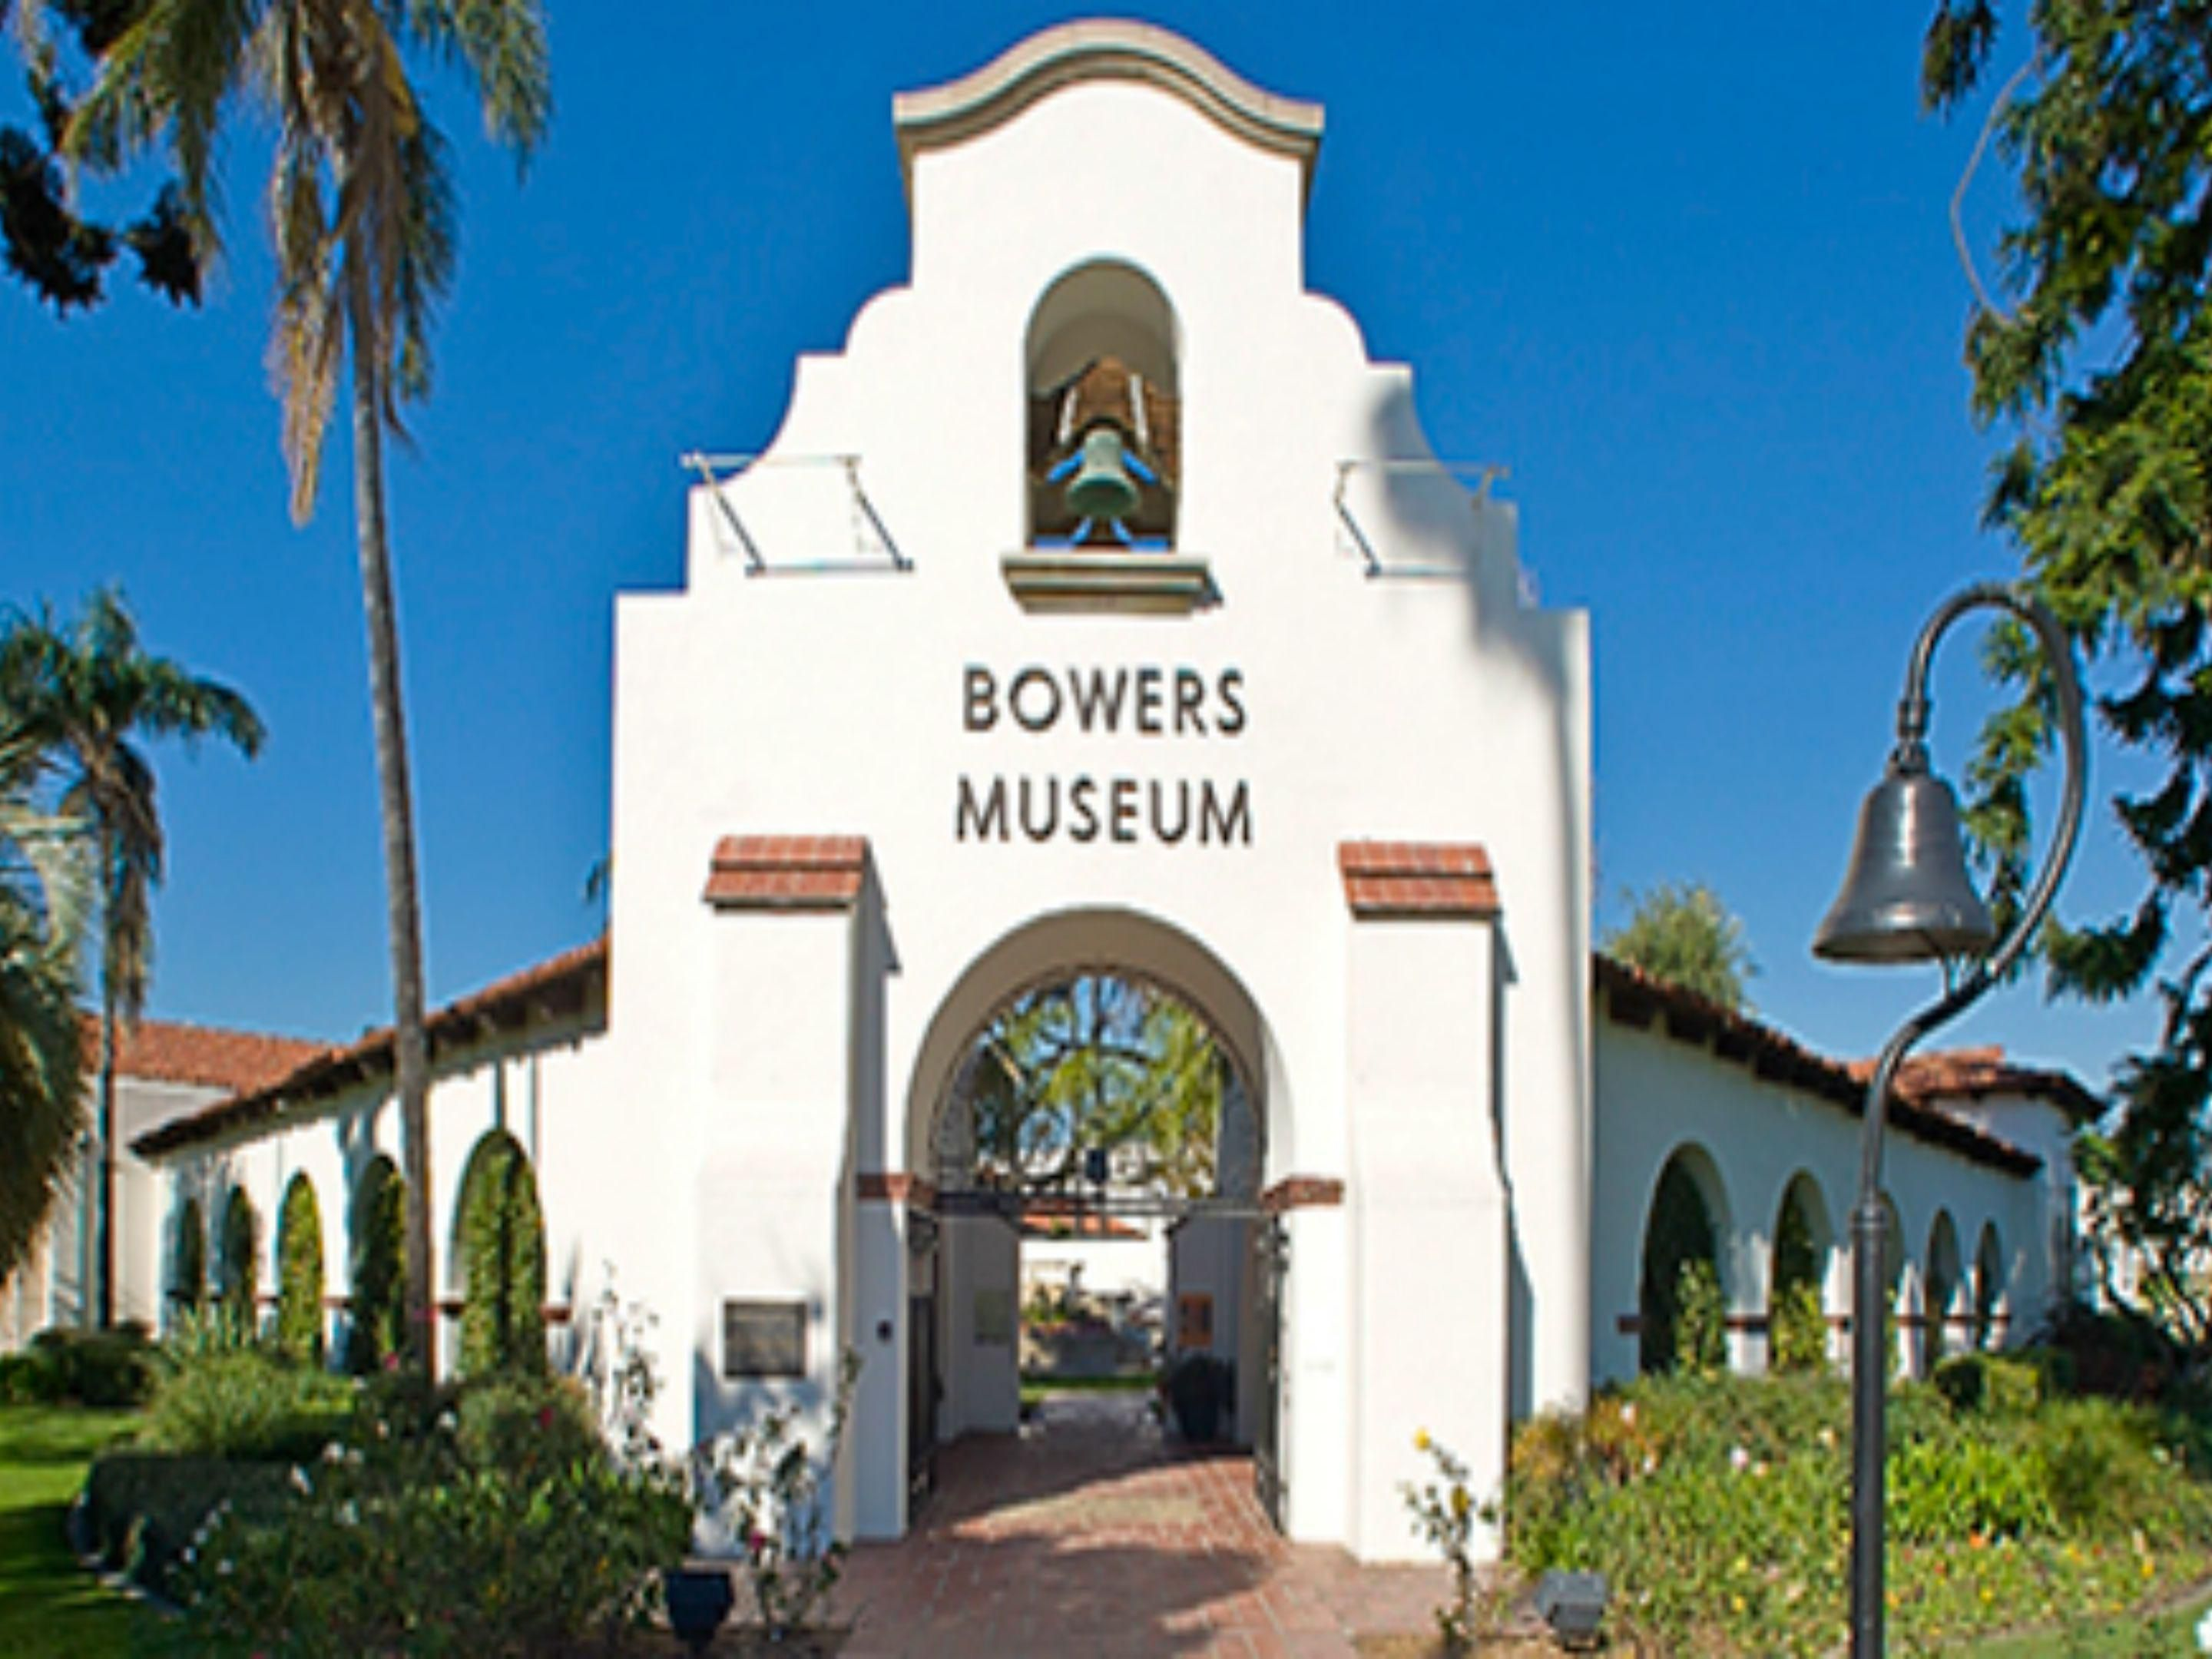 Bowers Museum, a short distance from our Santa Ana hotel